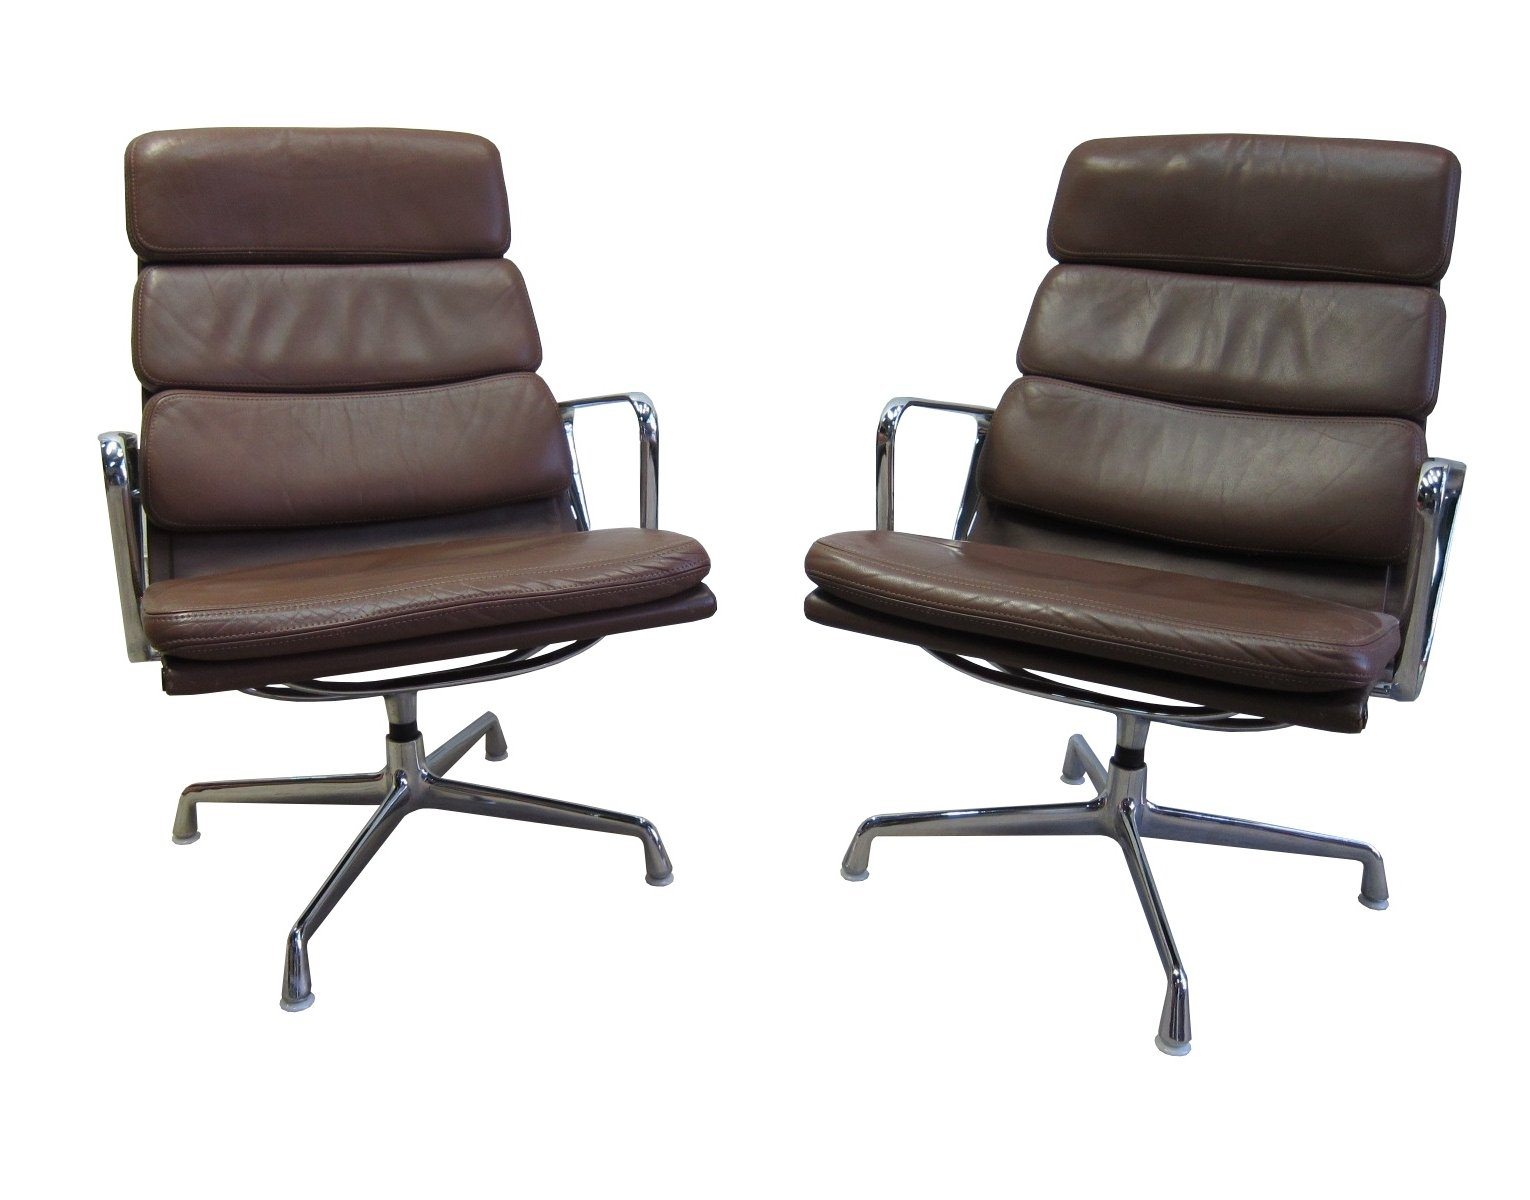 ea216 softpad lounge chairs by eames for herman miller by vitra 69516. Black Bedroom Furniture Sets. Home Design Ideas